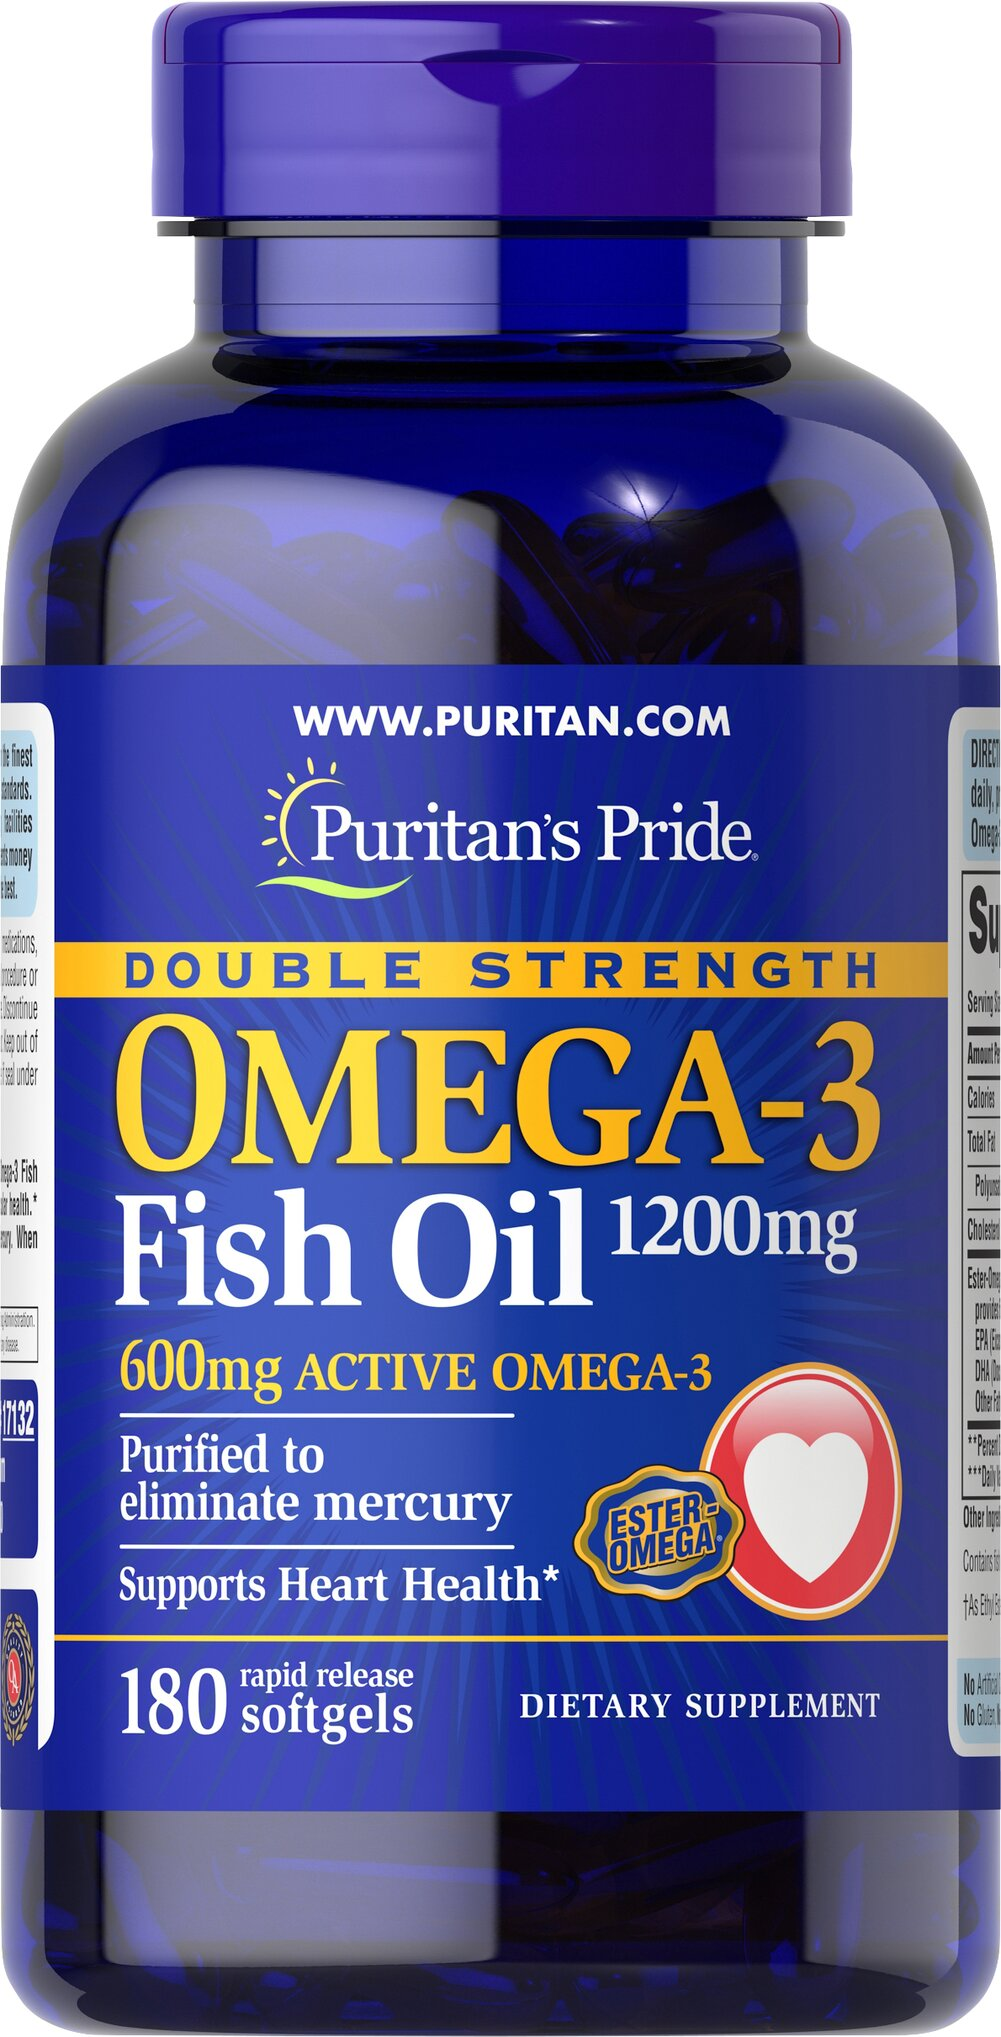 Double Strength Omega-3 Fish Oil 1200 mg  180 Softgels 1200 mg $44.99